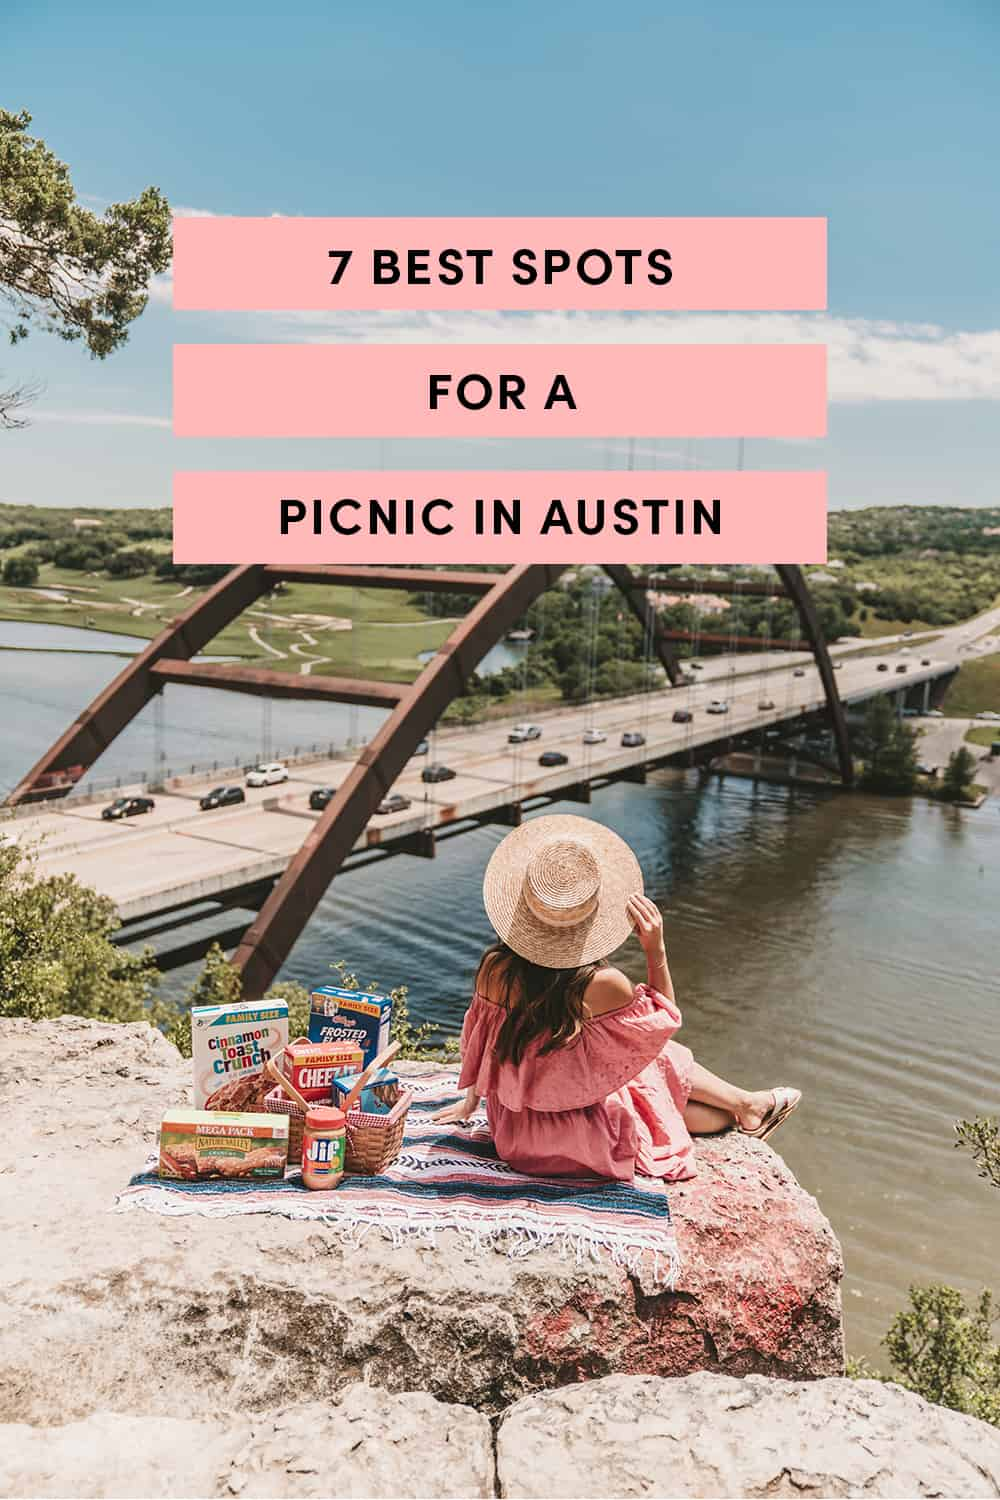 7 Best Spots For A Picnic In Austin